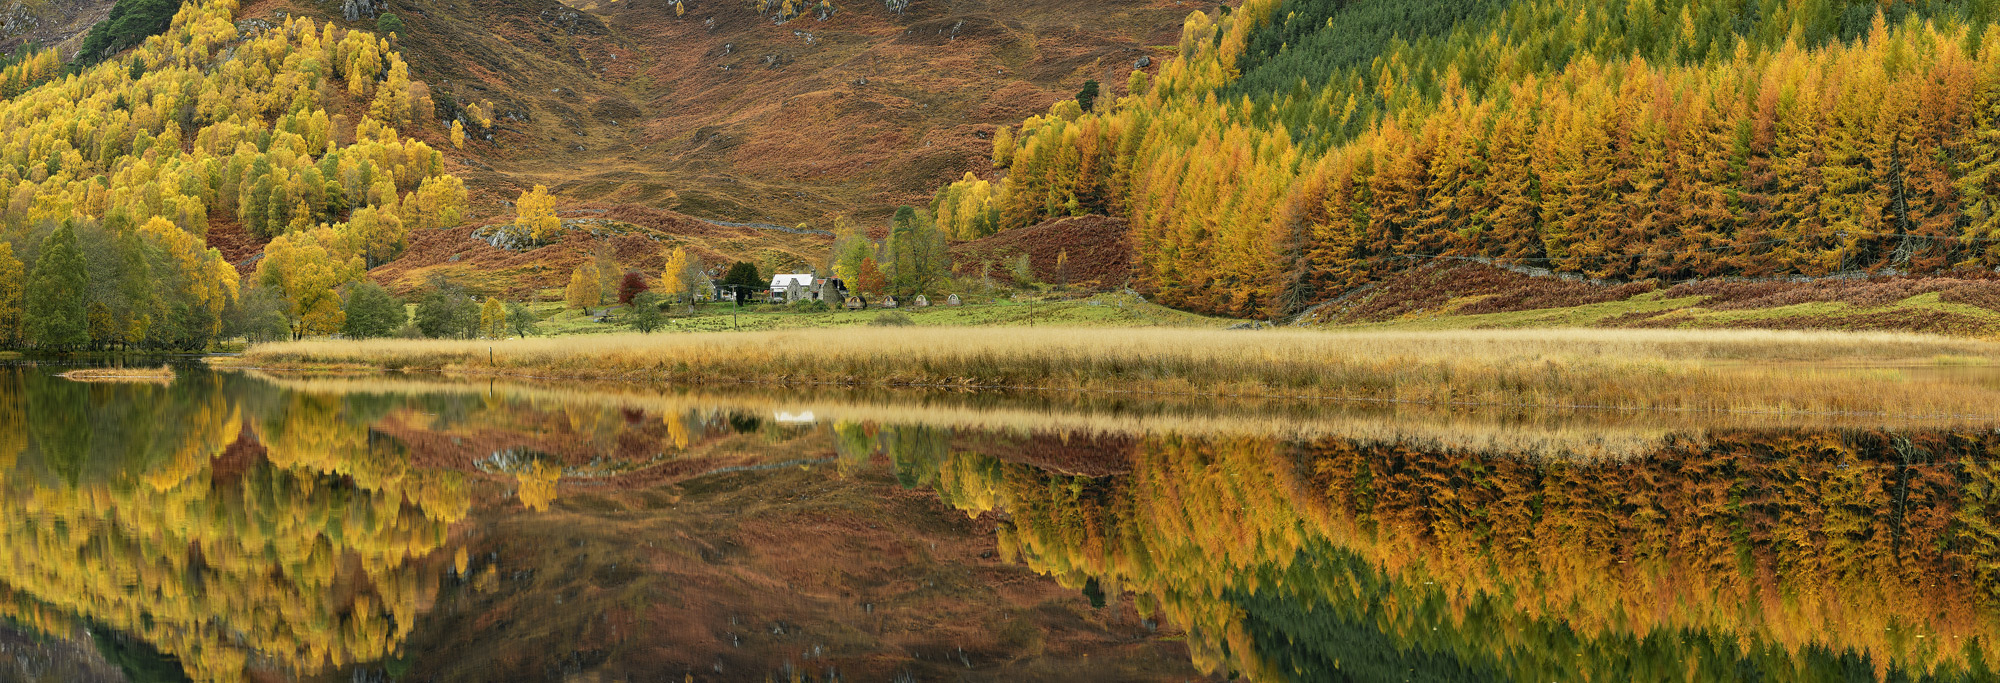 River Cannich Reflections Pano, Glen Cannich, Highlands, Scotland, autumn, colours, larch, evergreen, birch, gold, blazi, photo